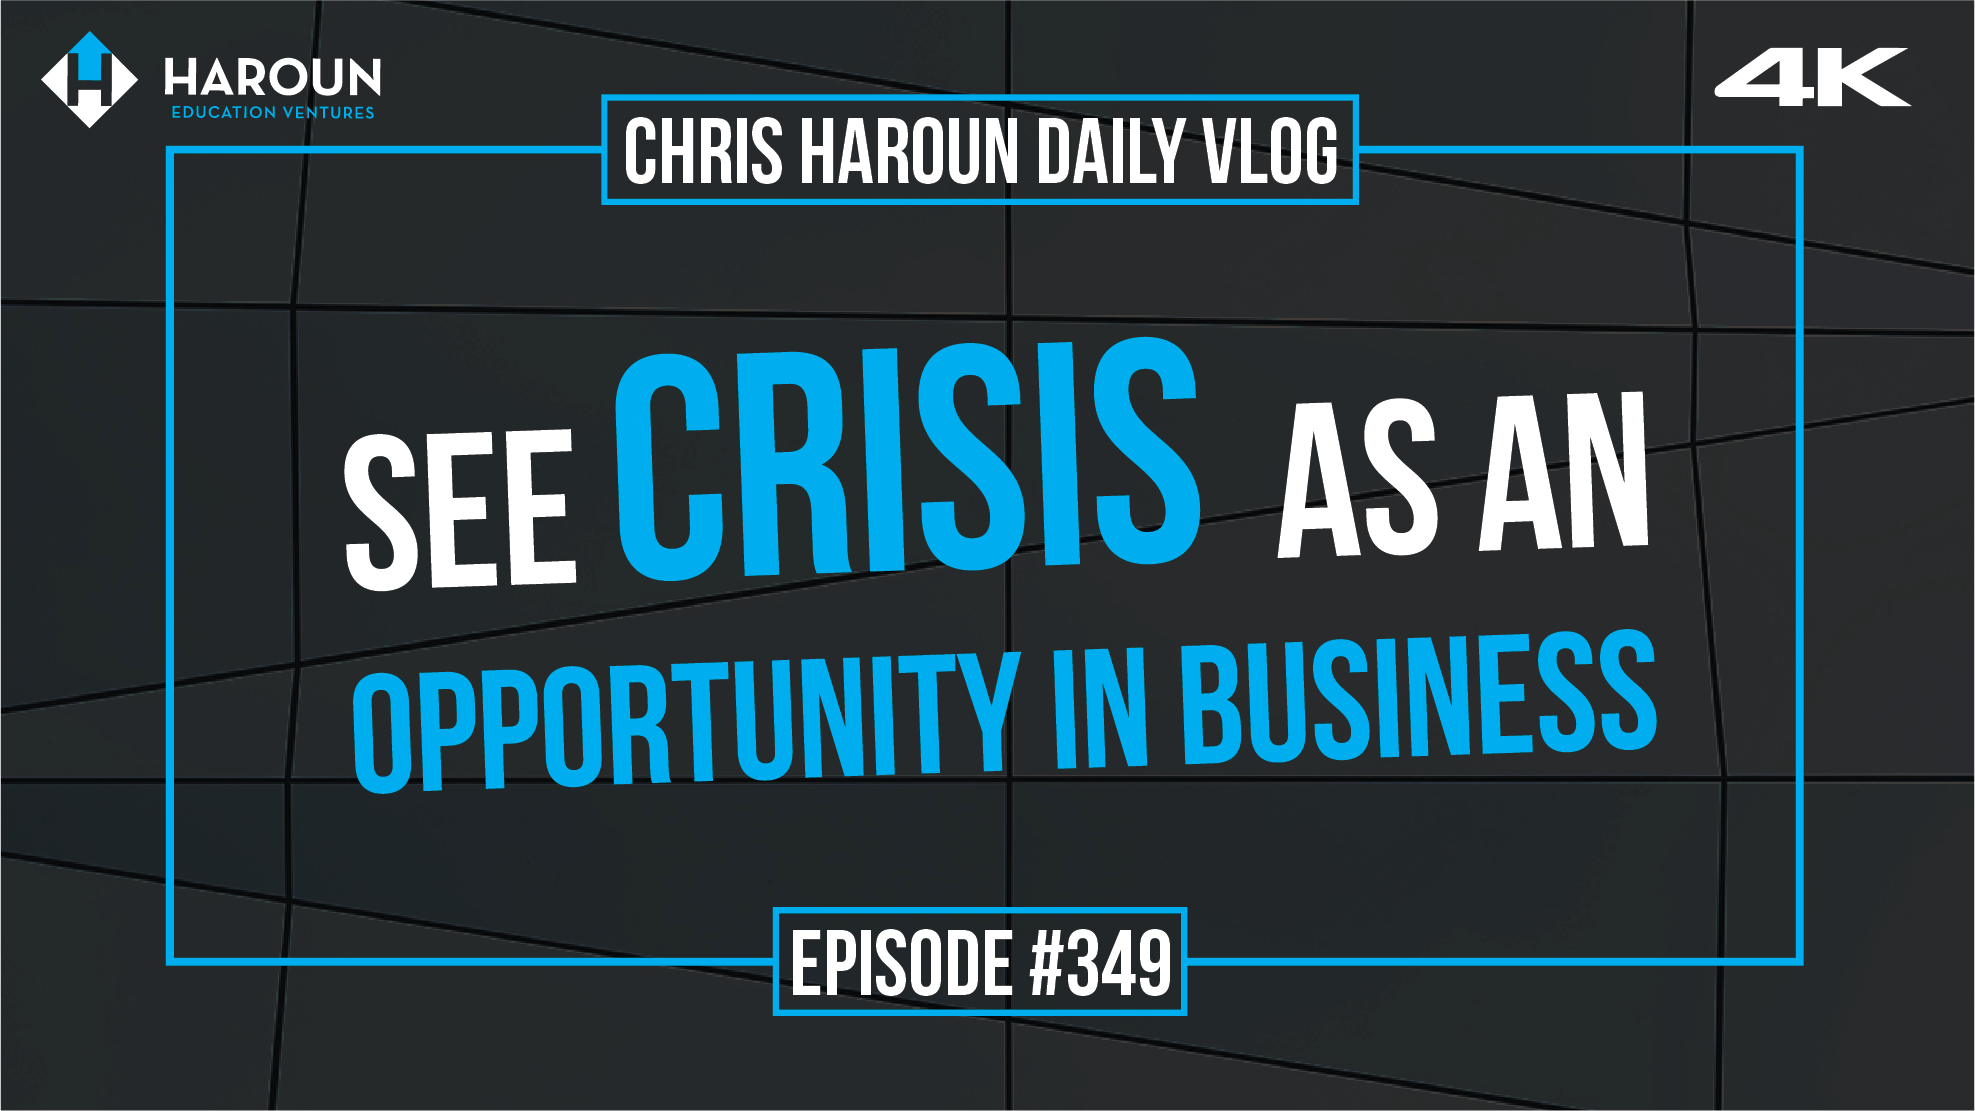 VLOG_349_7_15_2019_See Crisis As An Opportunity In Business .png